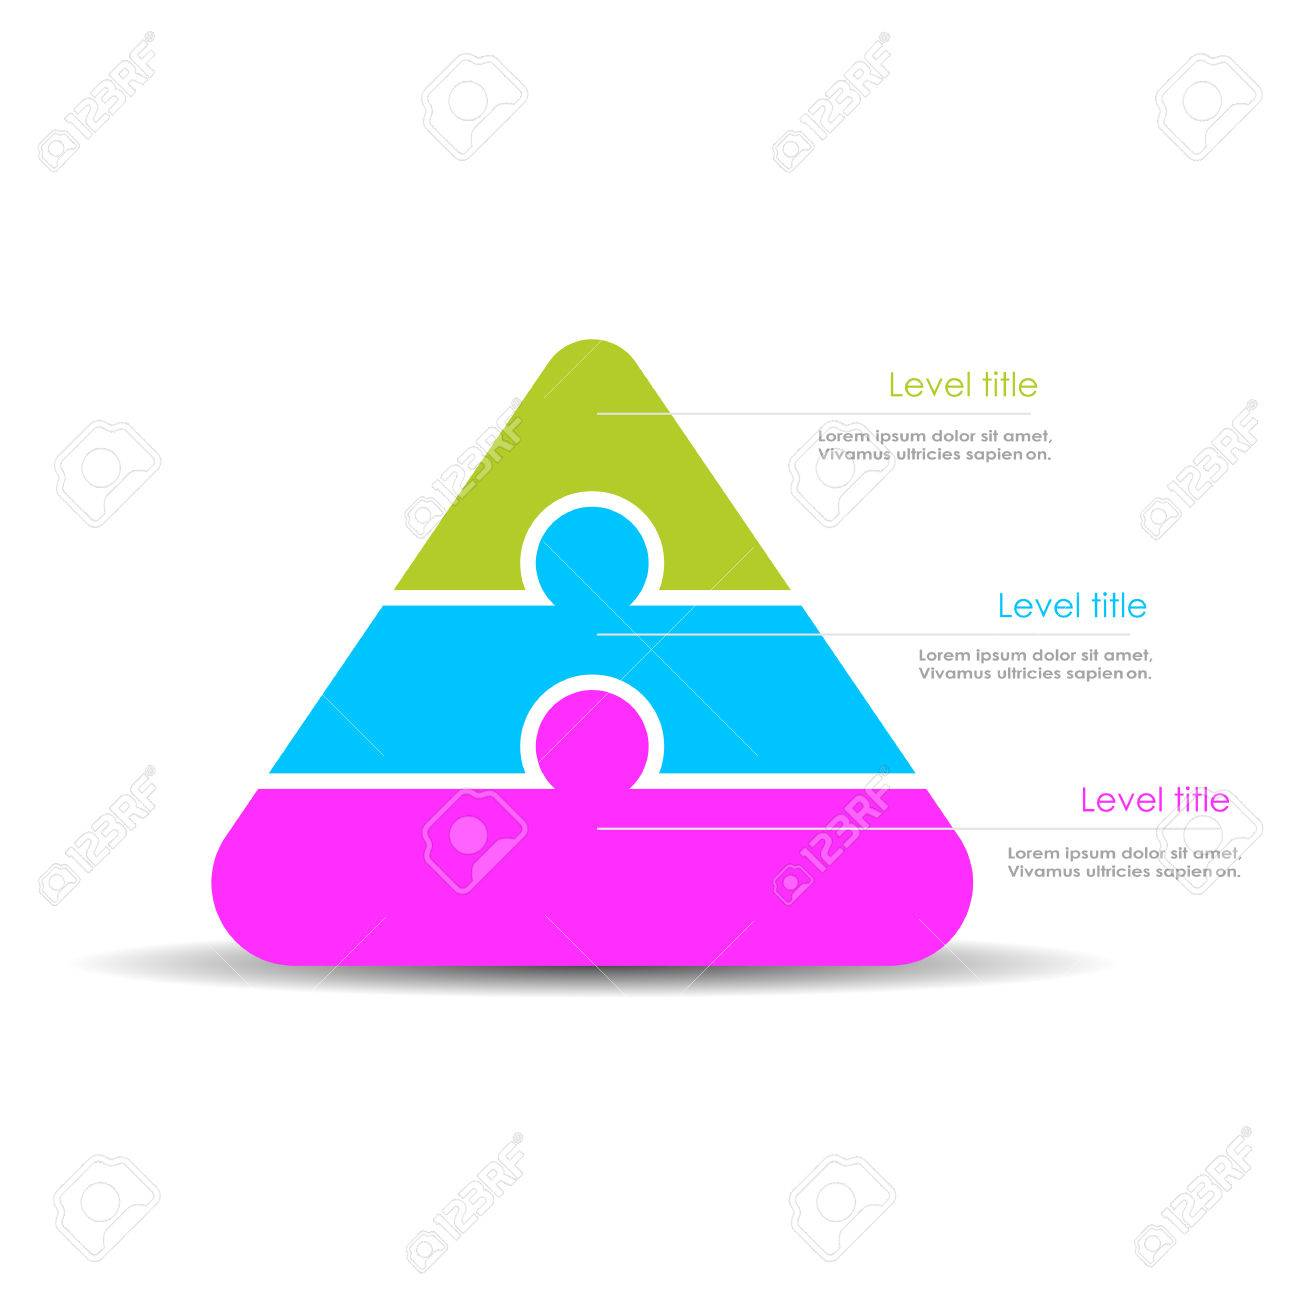 pyramid diagram template royalty free cliparts vectors and stock